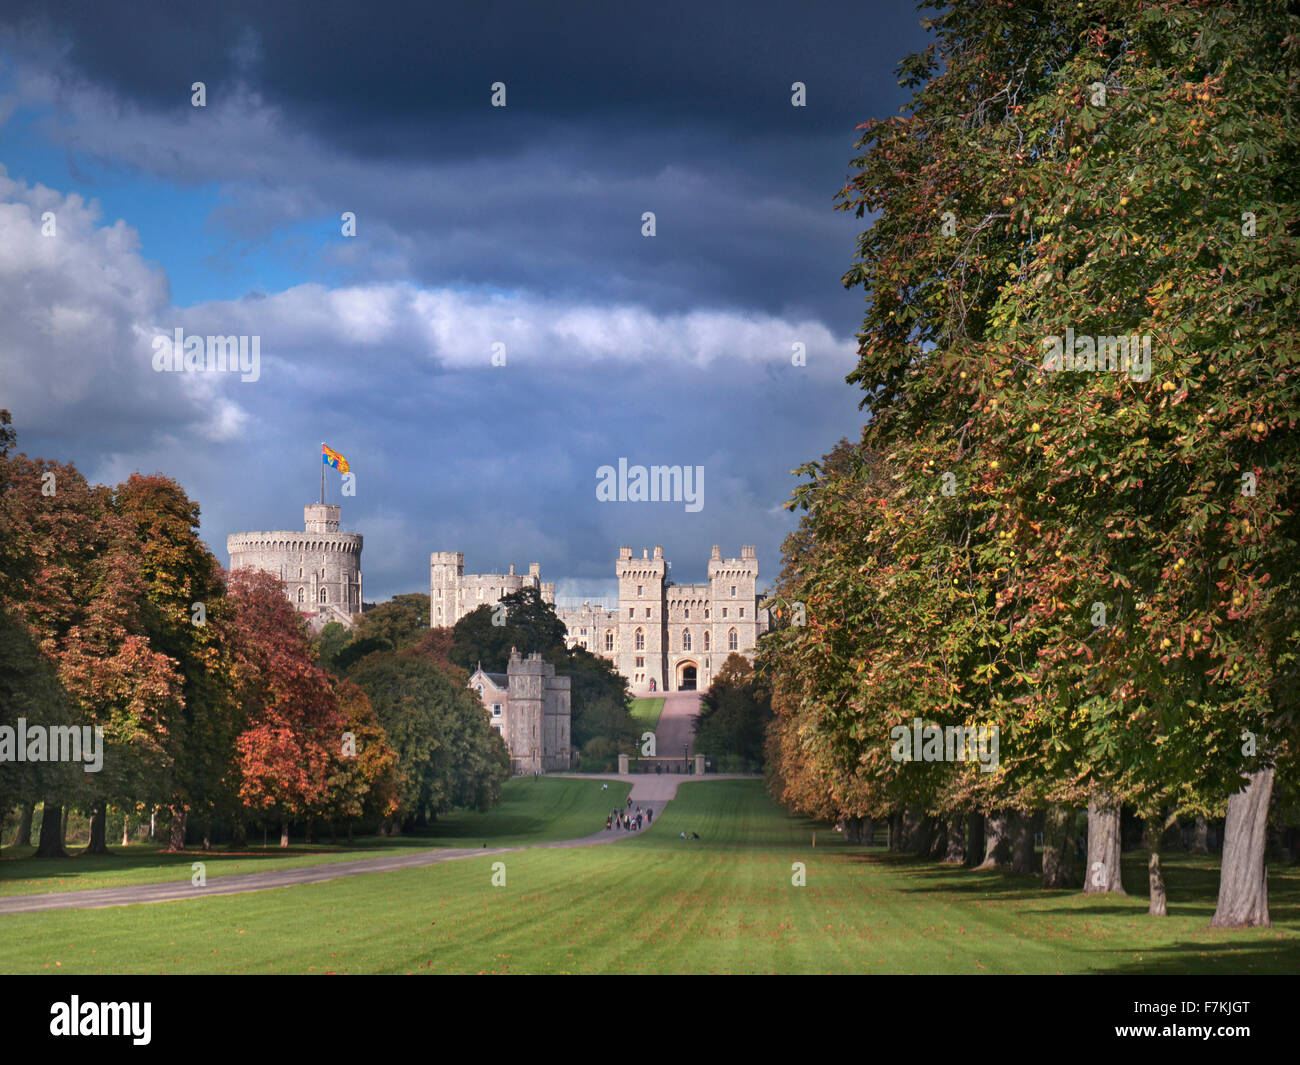 Windsor Castle flying Royal Standard viewed down the Long Walk with walkers, in autumnal colour with dramatic shafts - Stock Image